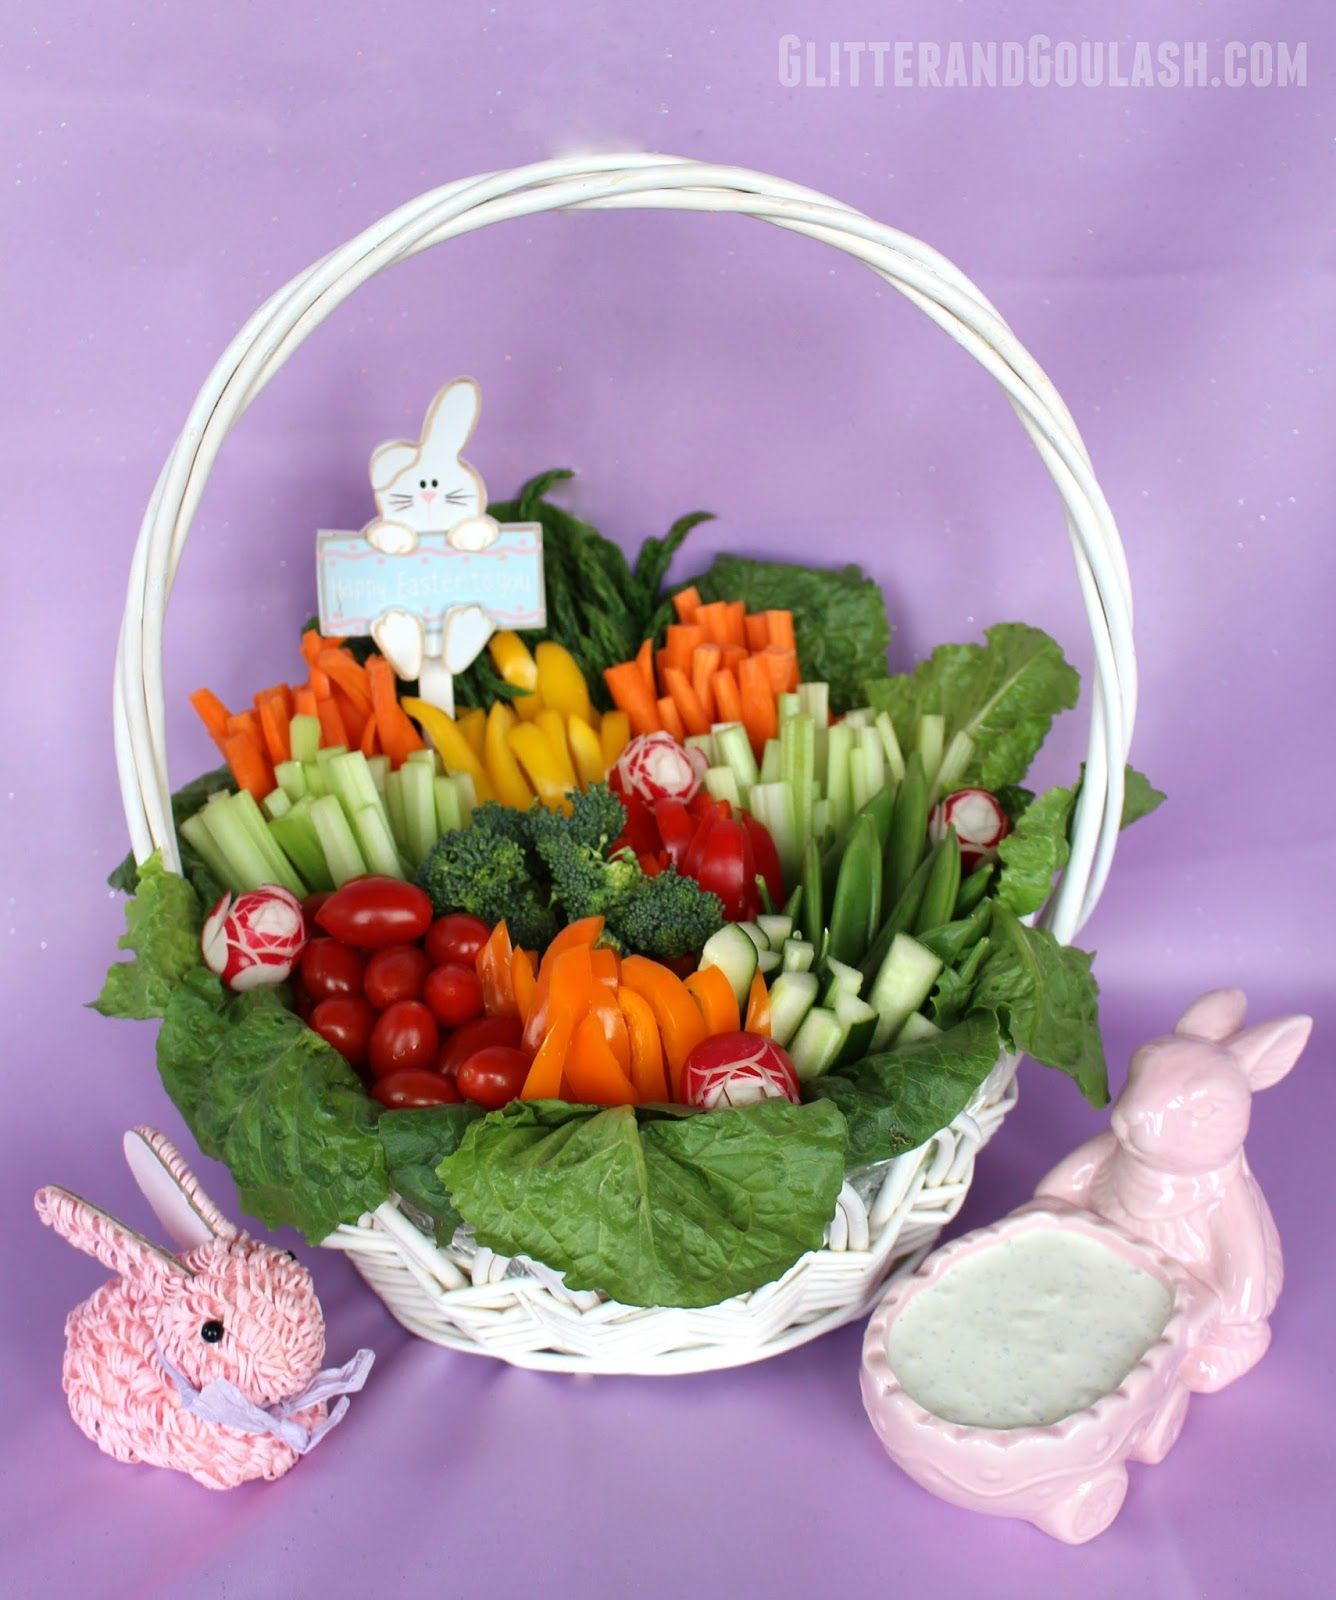 Easter Basket Relish Tray - Glitter and Goulash